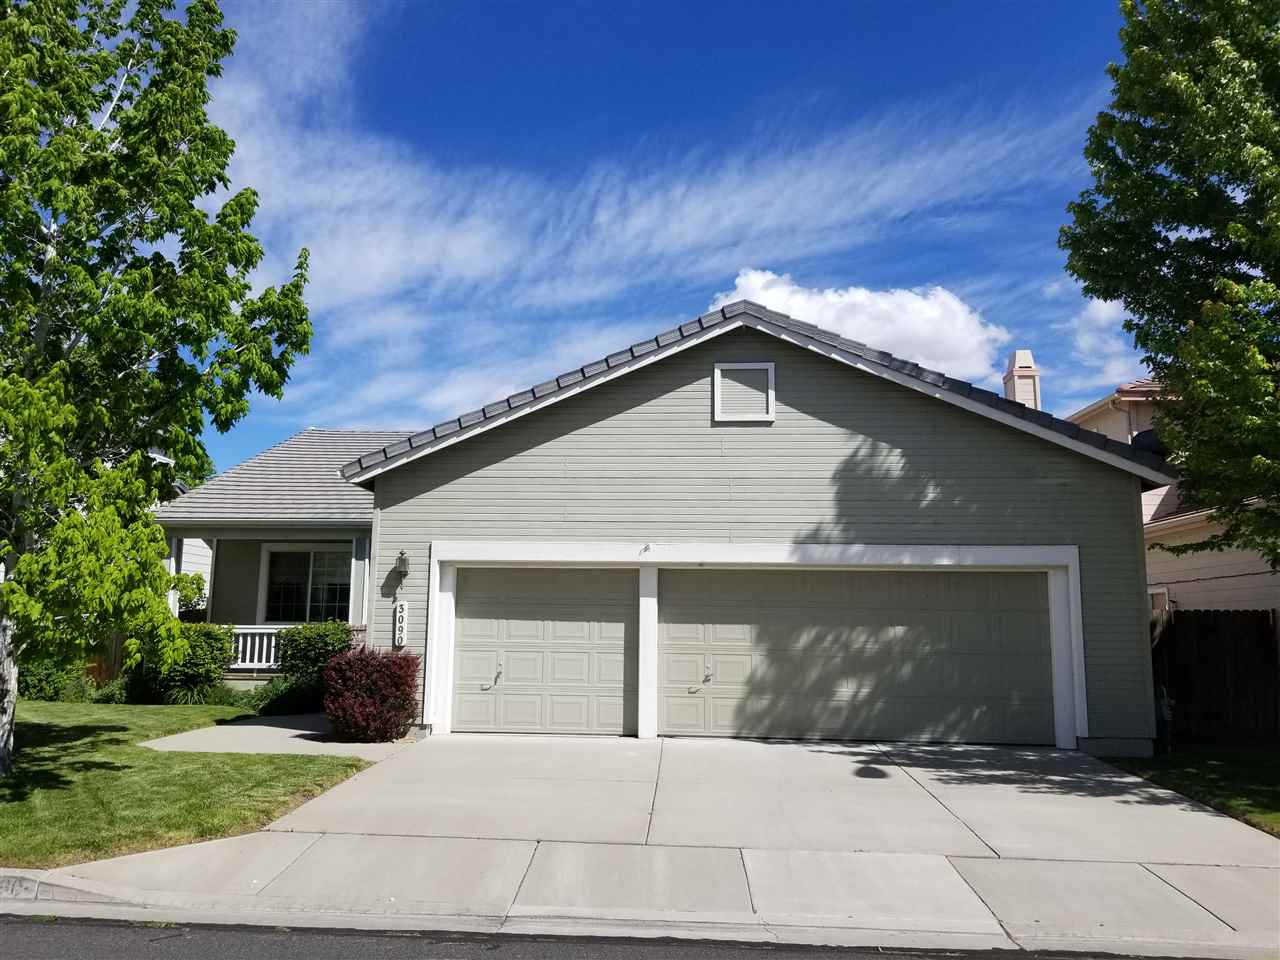 3090 Creekwood Drive, Reno, NV 89502-7724 now has a new price of $438,000!